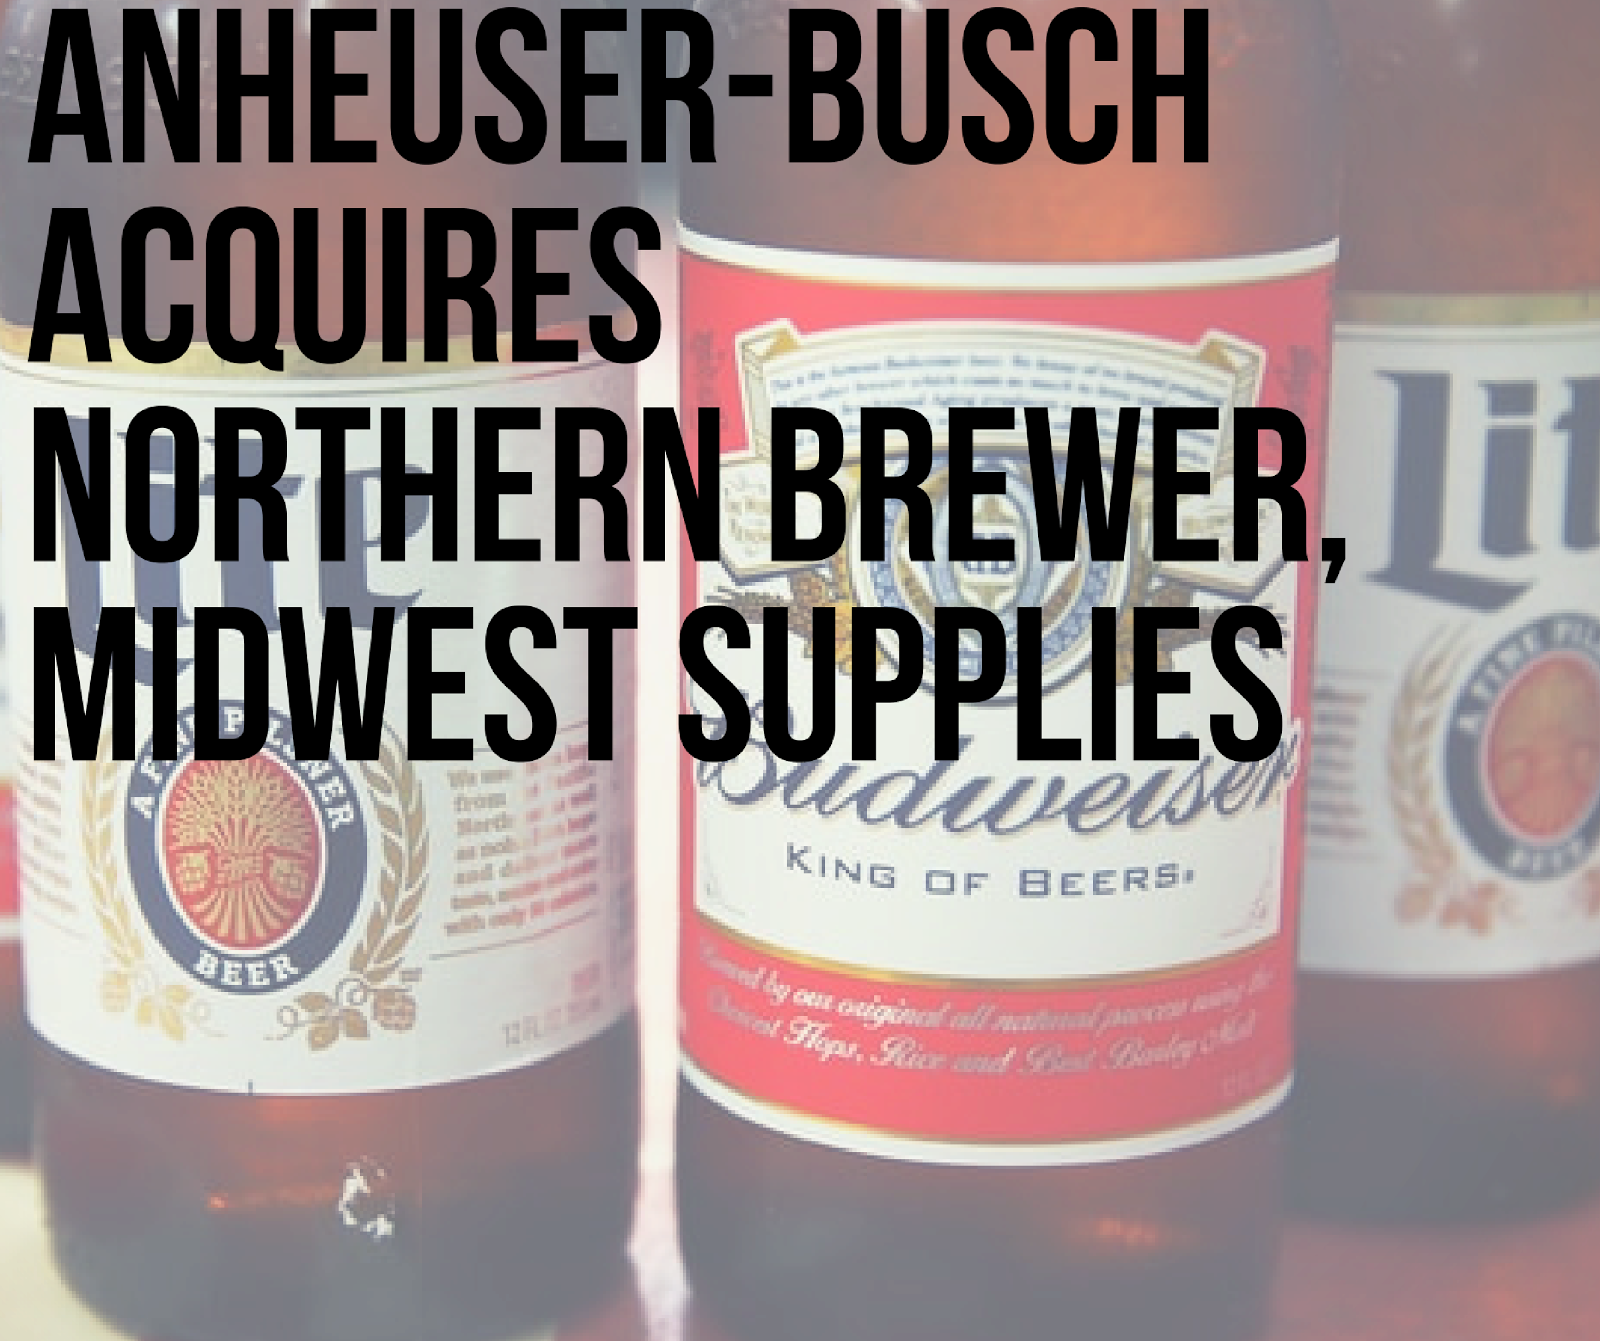 Anheuser-Busch / InBev Acquires Northern Brewer & Midwest Supplies